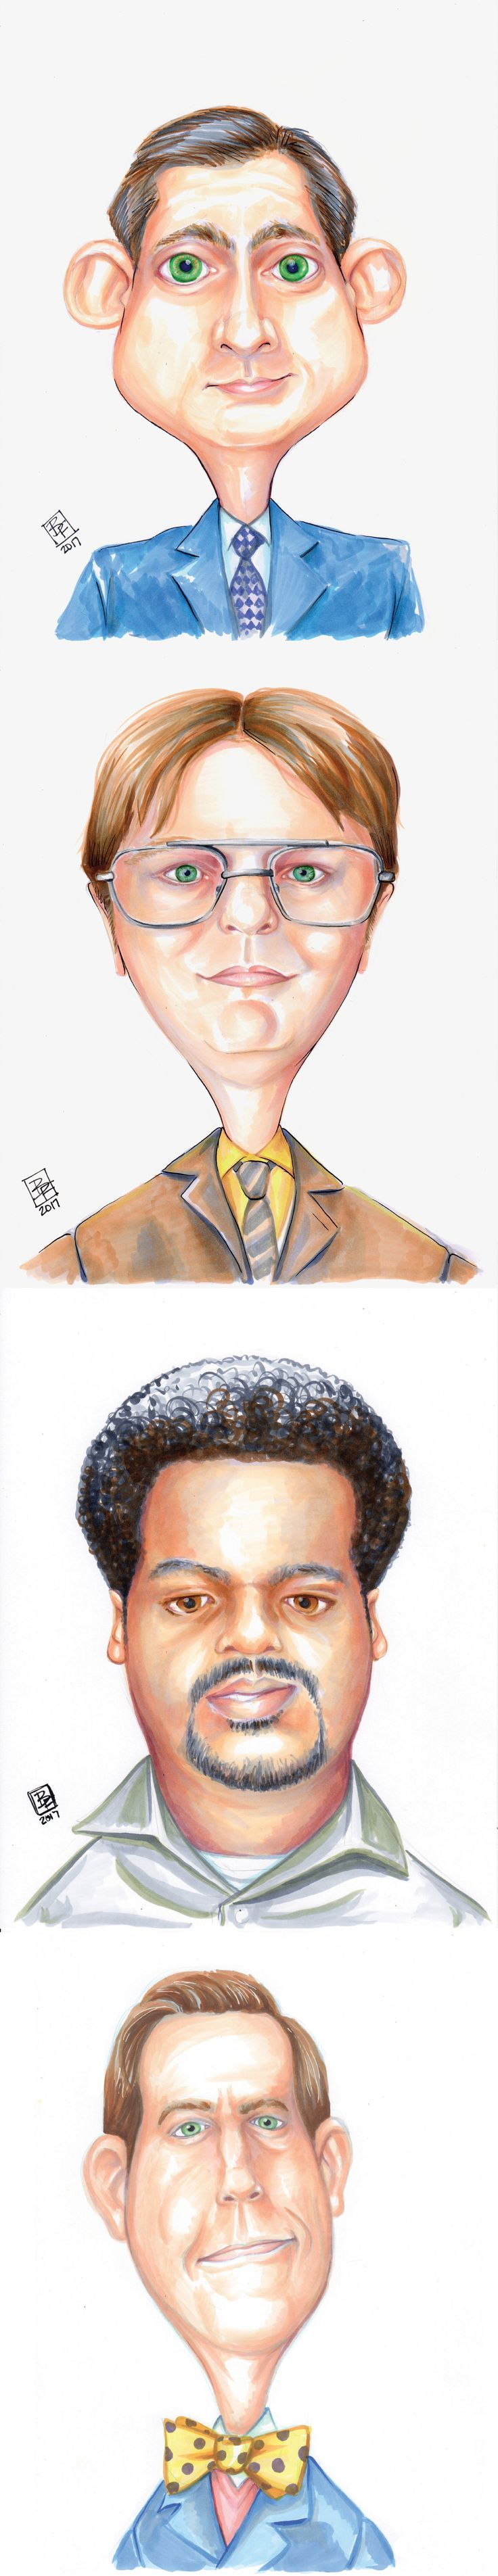 Hand drawn portraits of favorite characters from The Office tv show - Michael Scott, Dwight Schrute, Darryl Philbin, and Andy Bernard